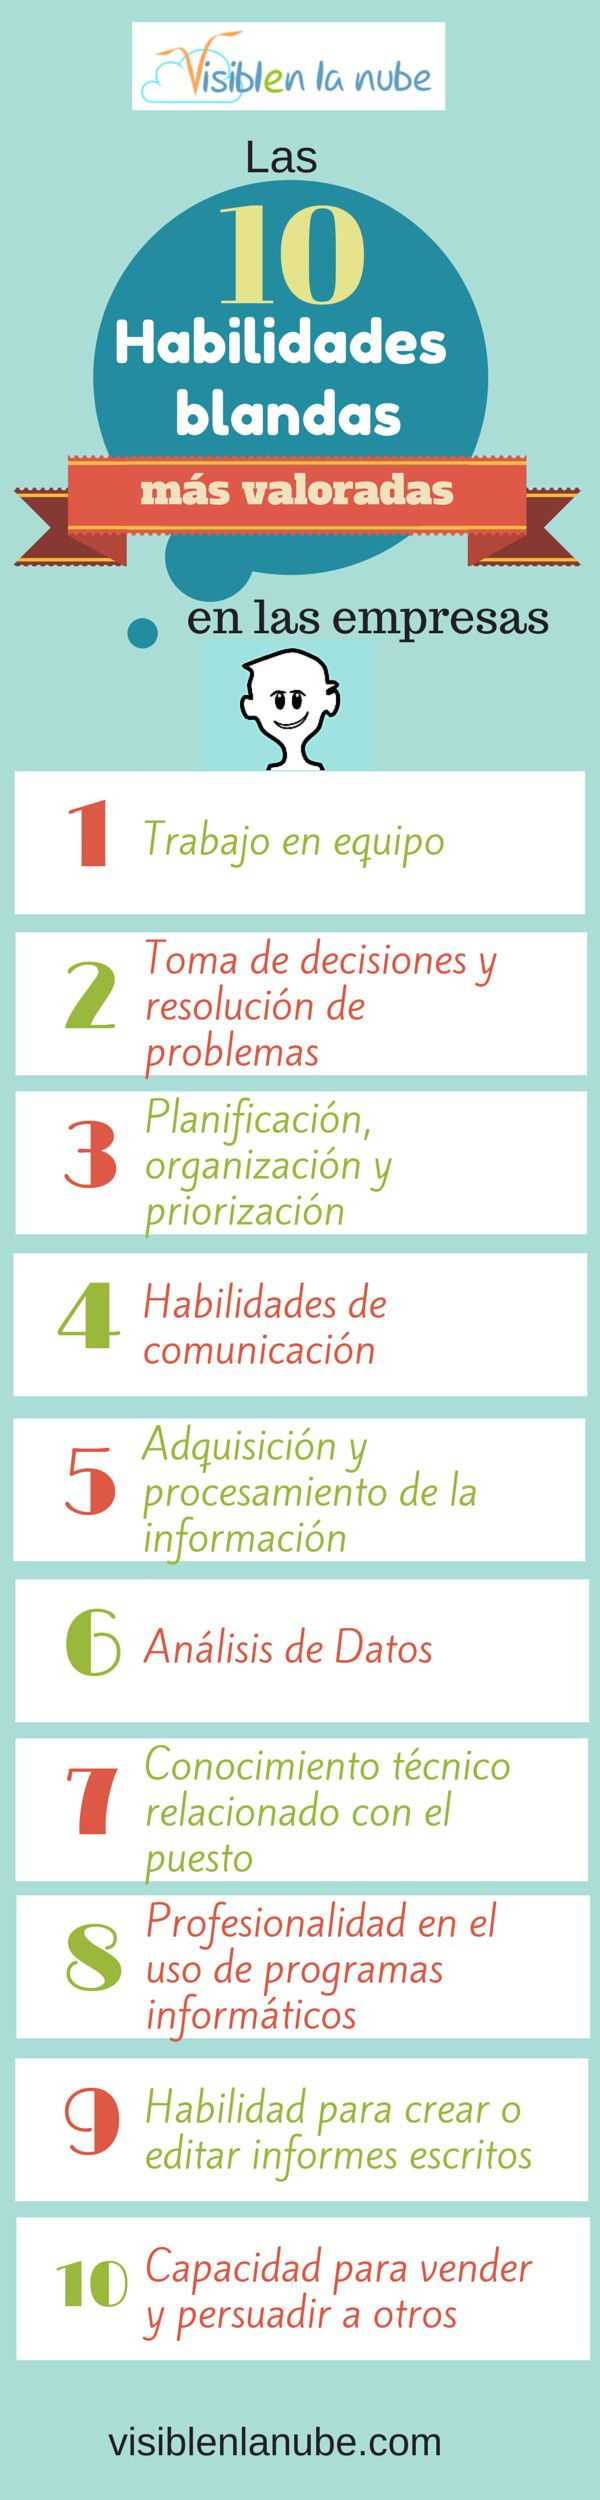 10 #Habilidades blandas valoradas por las #empresas #marketing